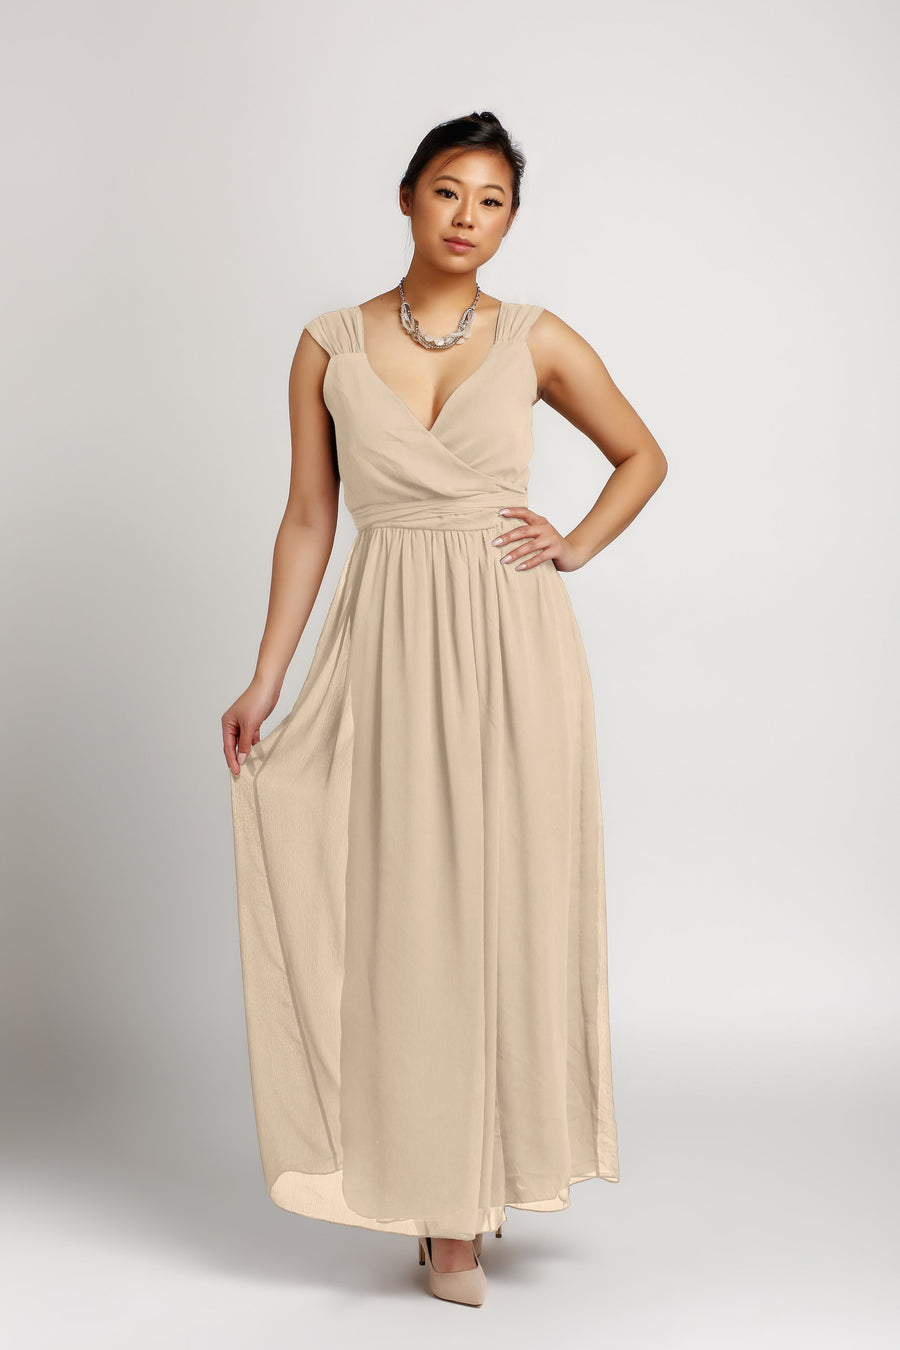 Bridesmaid Dresses - Wrap Floor Length Chiffon Bridesmaid Dress - BridesMade